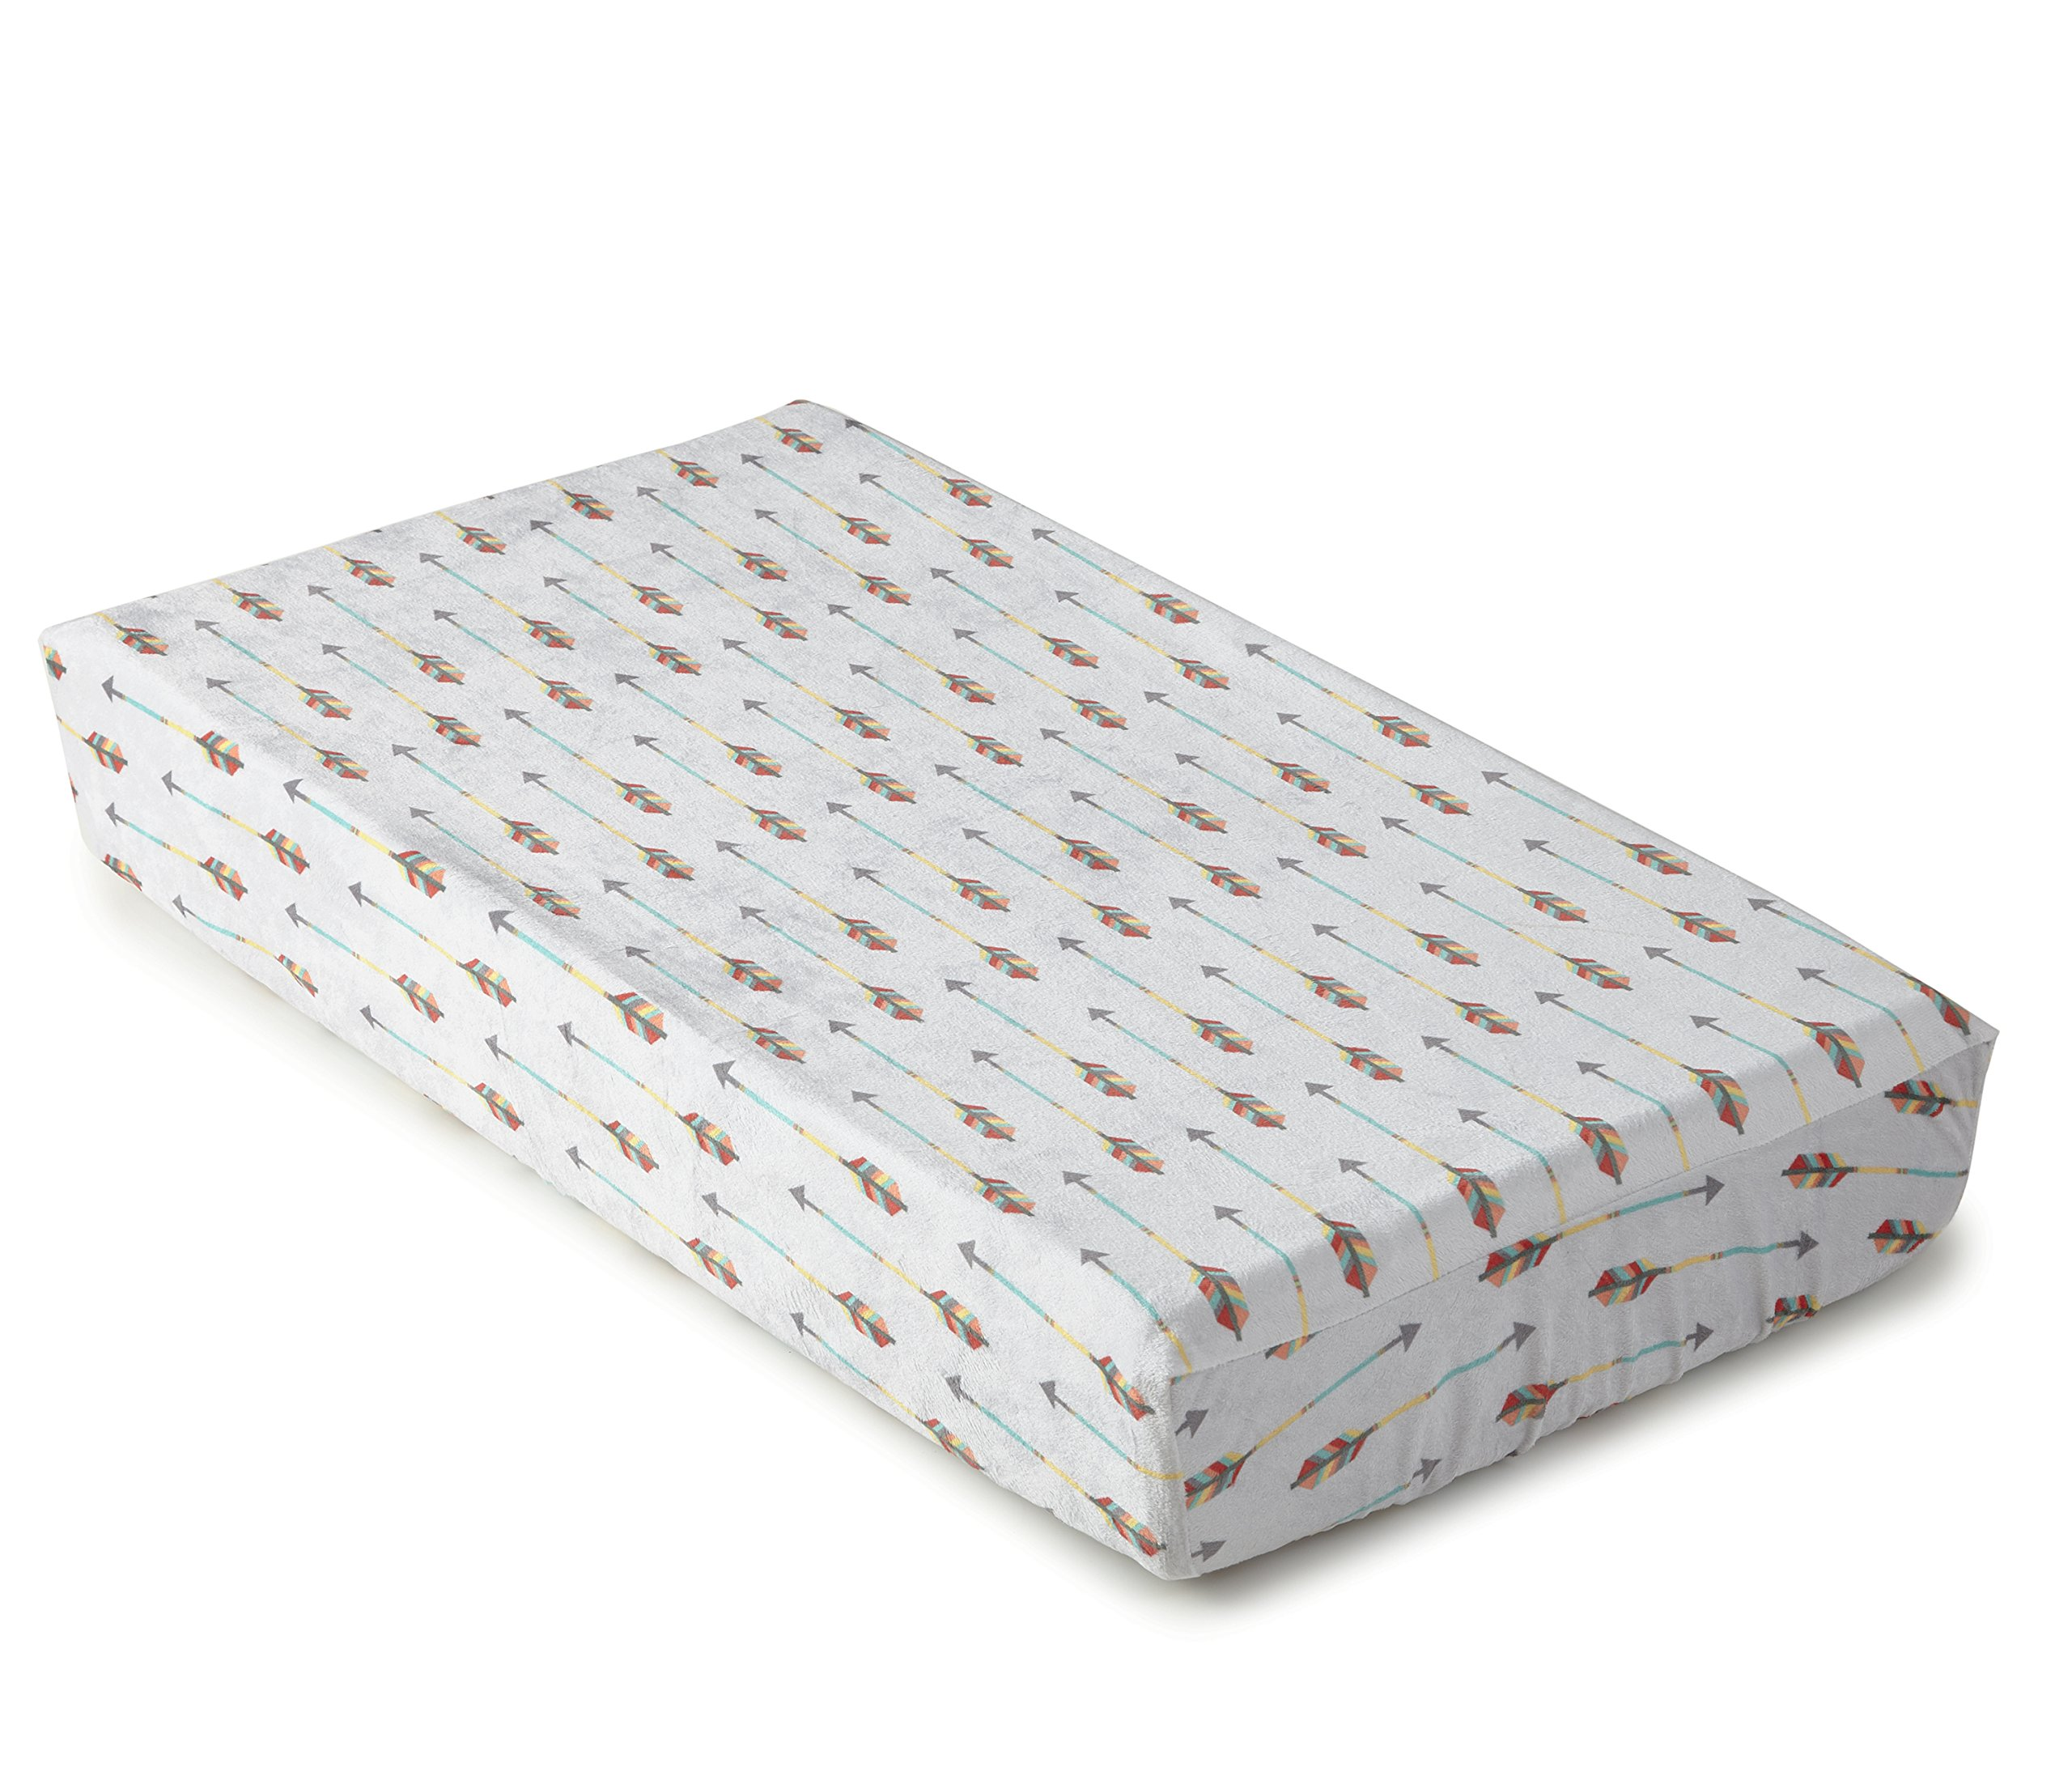 Levtex Home Baby Zambezi Changing Pad Cover, Grey